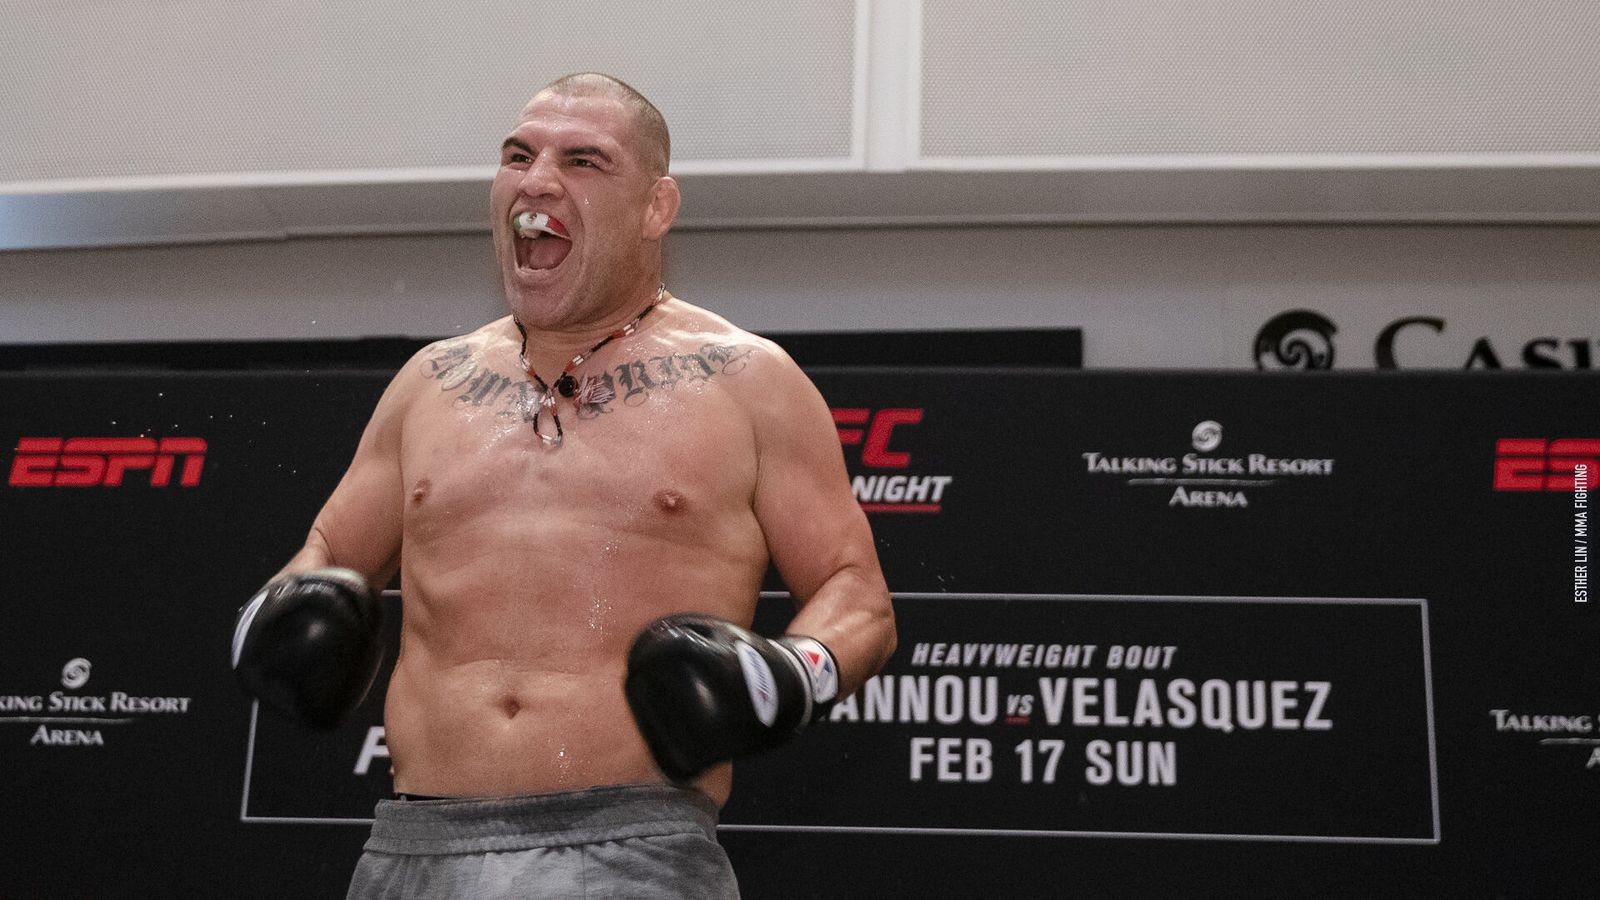 UFC Phoenix open workout video: Cain Velasquez is FIRED UP and pounding pads